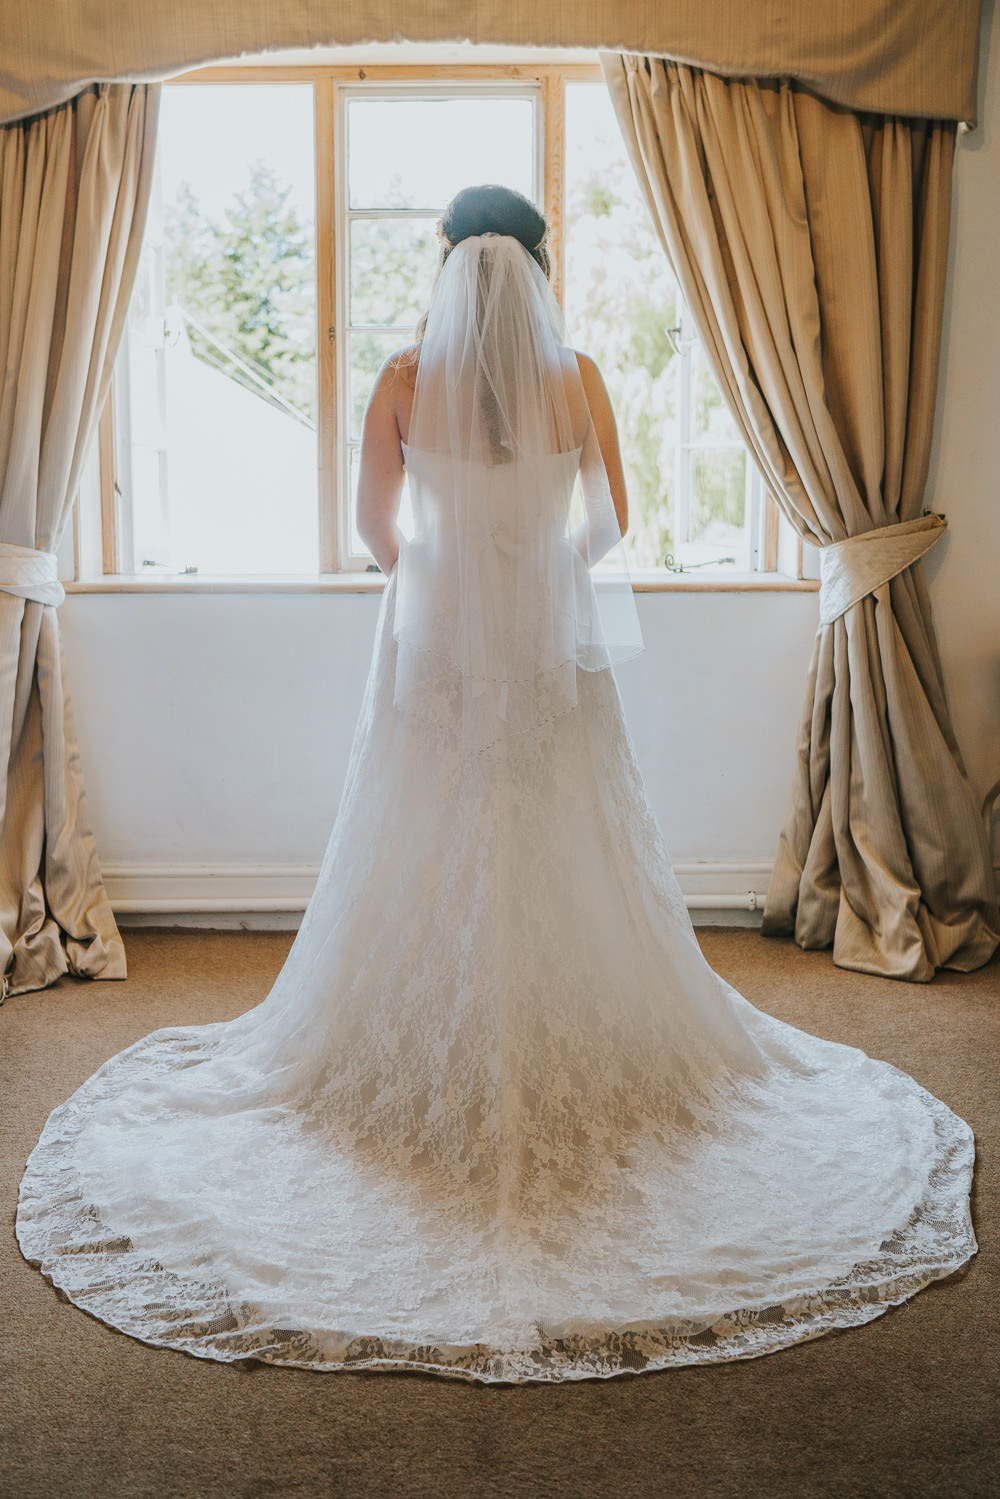 Outdoor Natural Relaxed Laid Back Summer White Dress Bridal Morning Prep Veil Train | Prested Hall Wedding Grace Elizabeth Photography